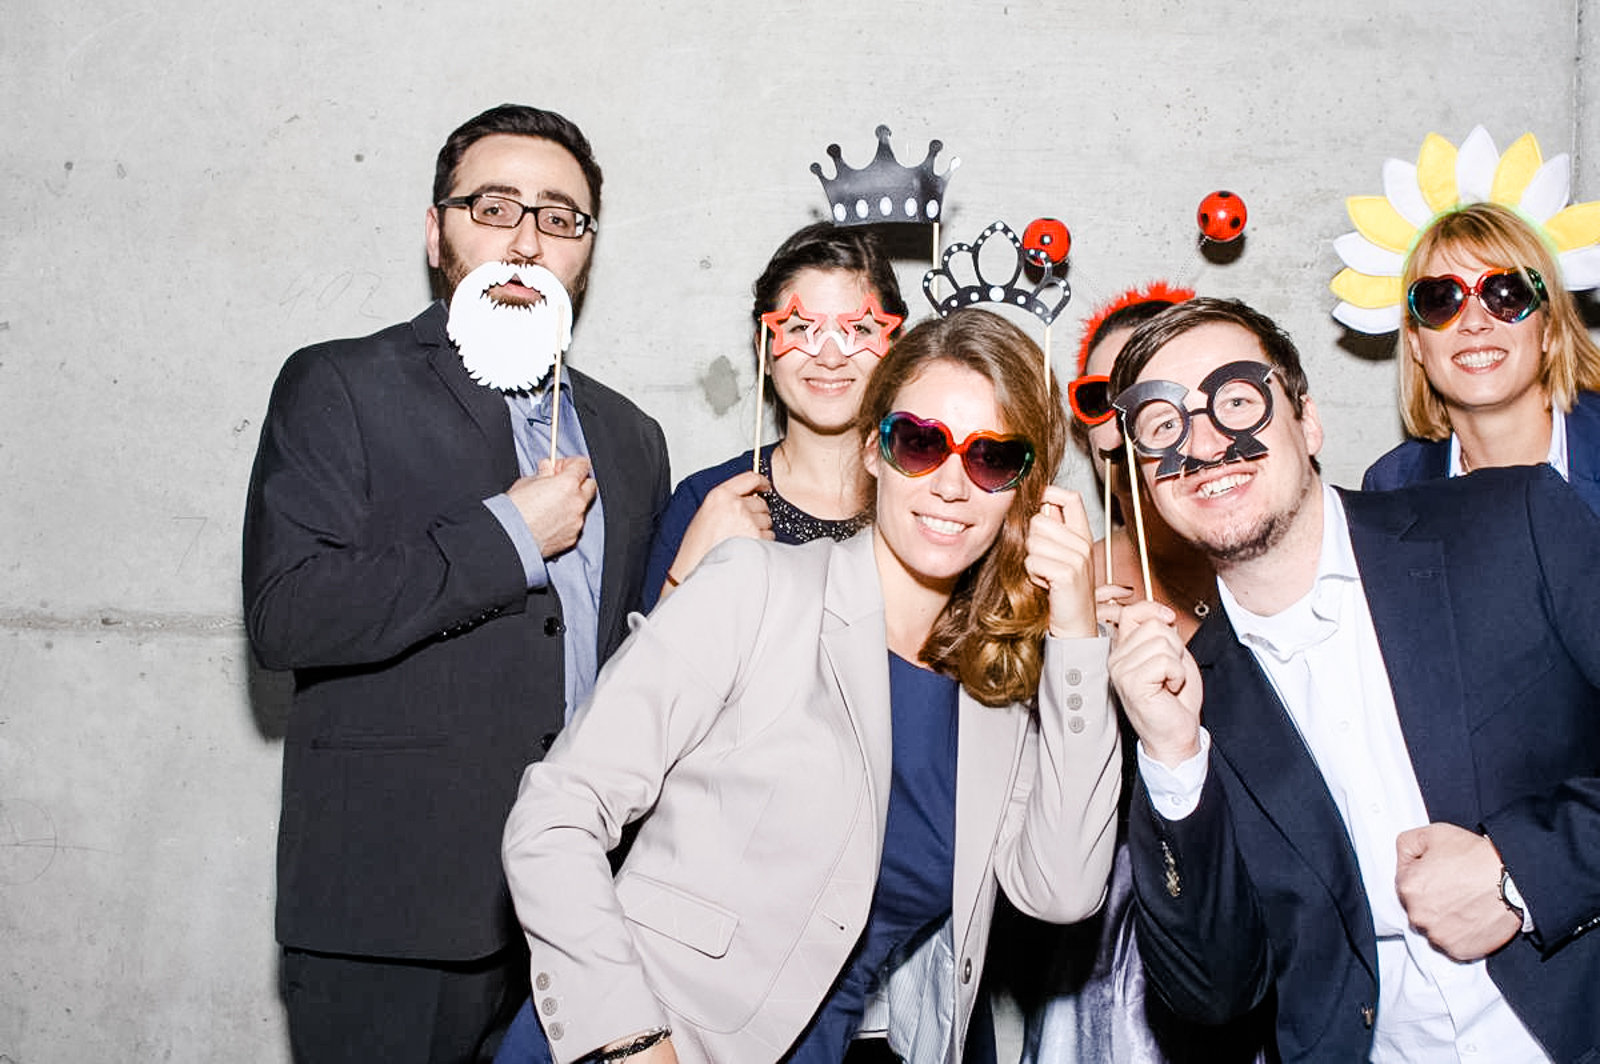 Monstergraphie_Photobooth_Zeche_Zollverein-23.jpg?fit=1600%2C1064